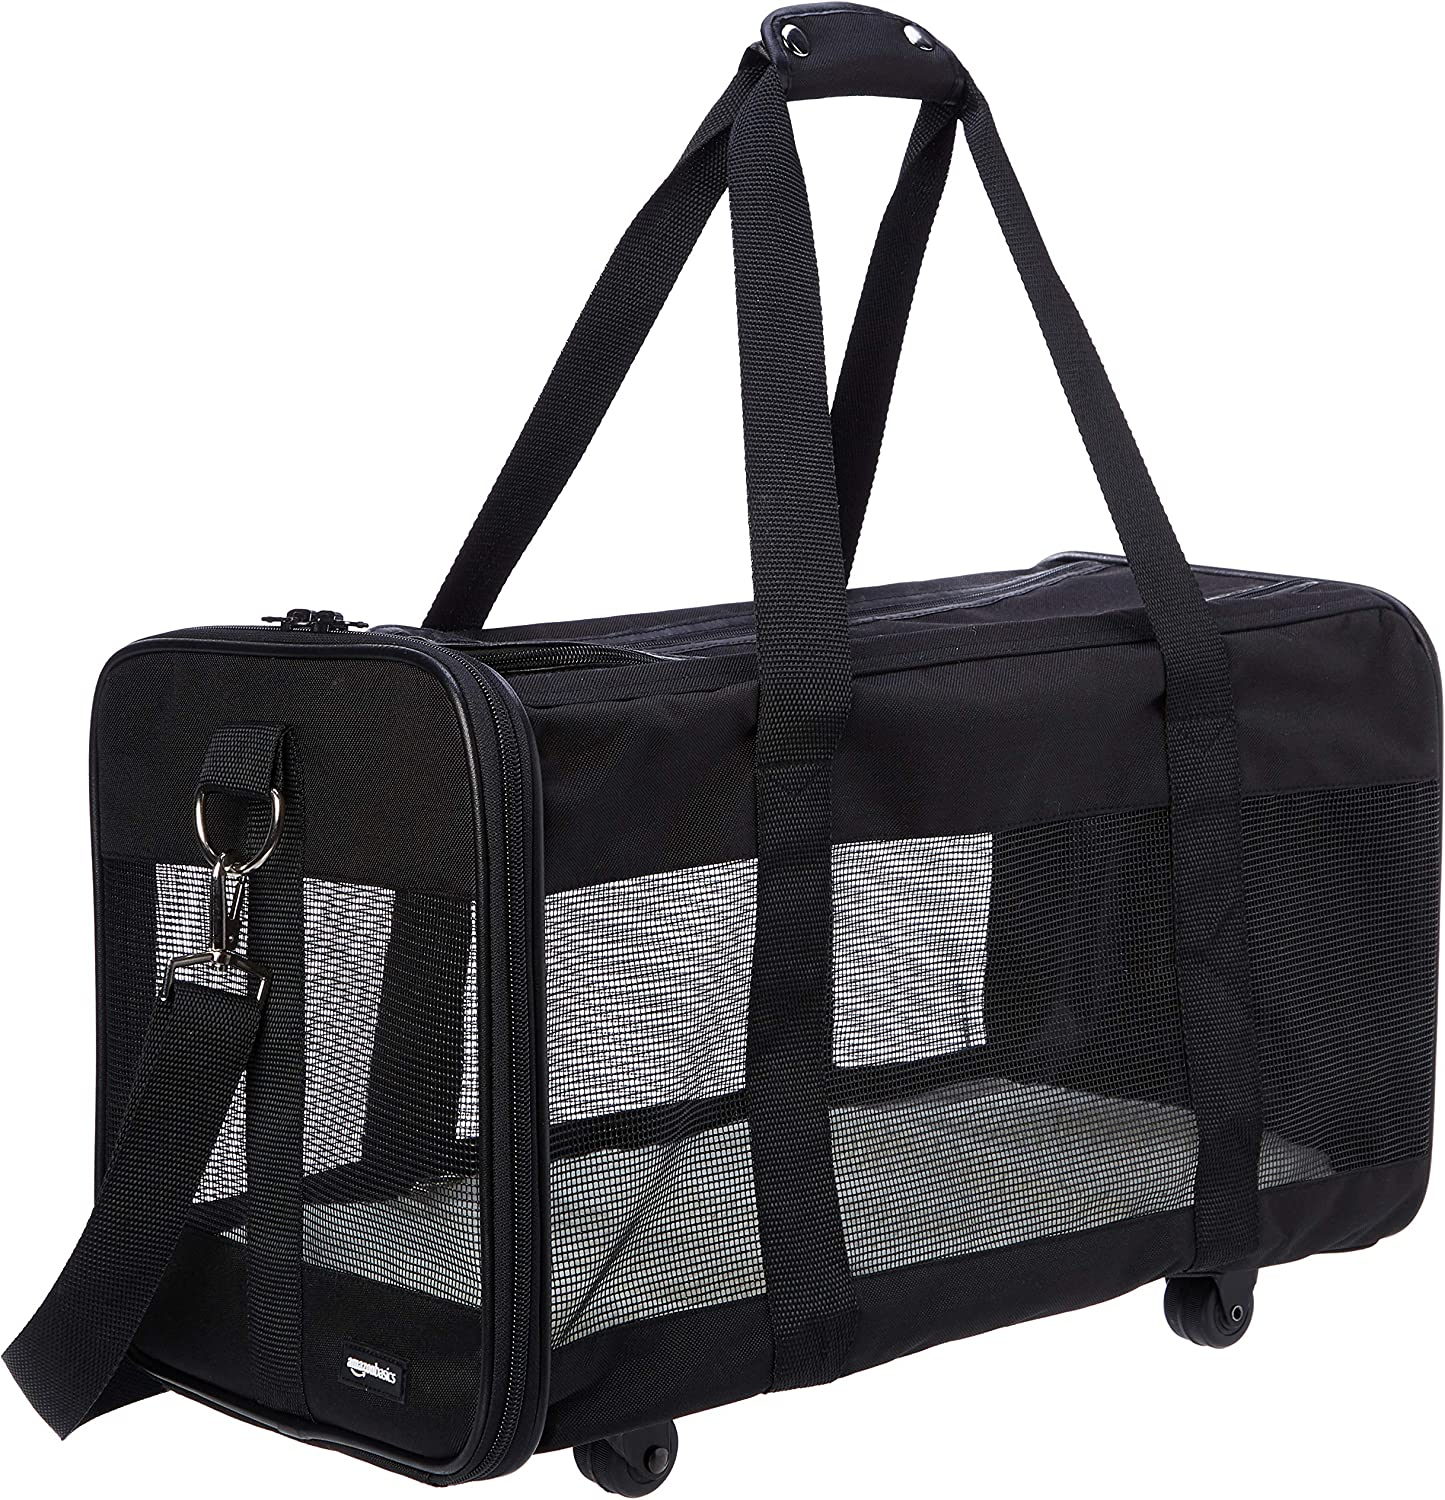 AmazonBasics Soft-Sided Mesh Pet Travel Carrier with Wheels